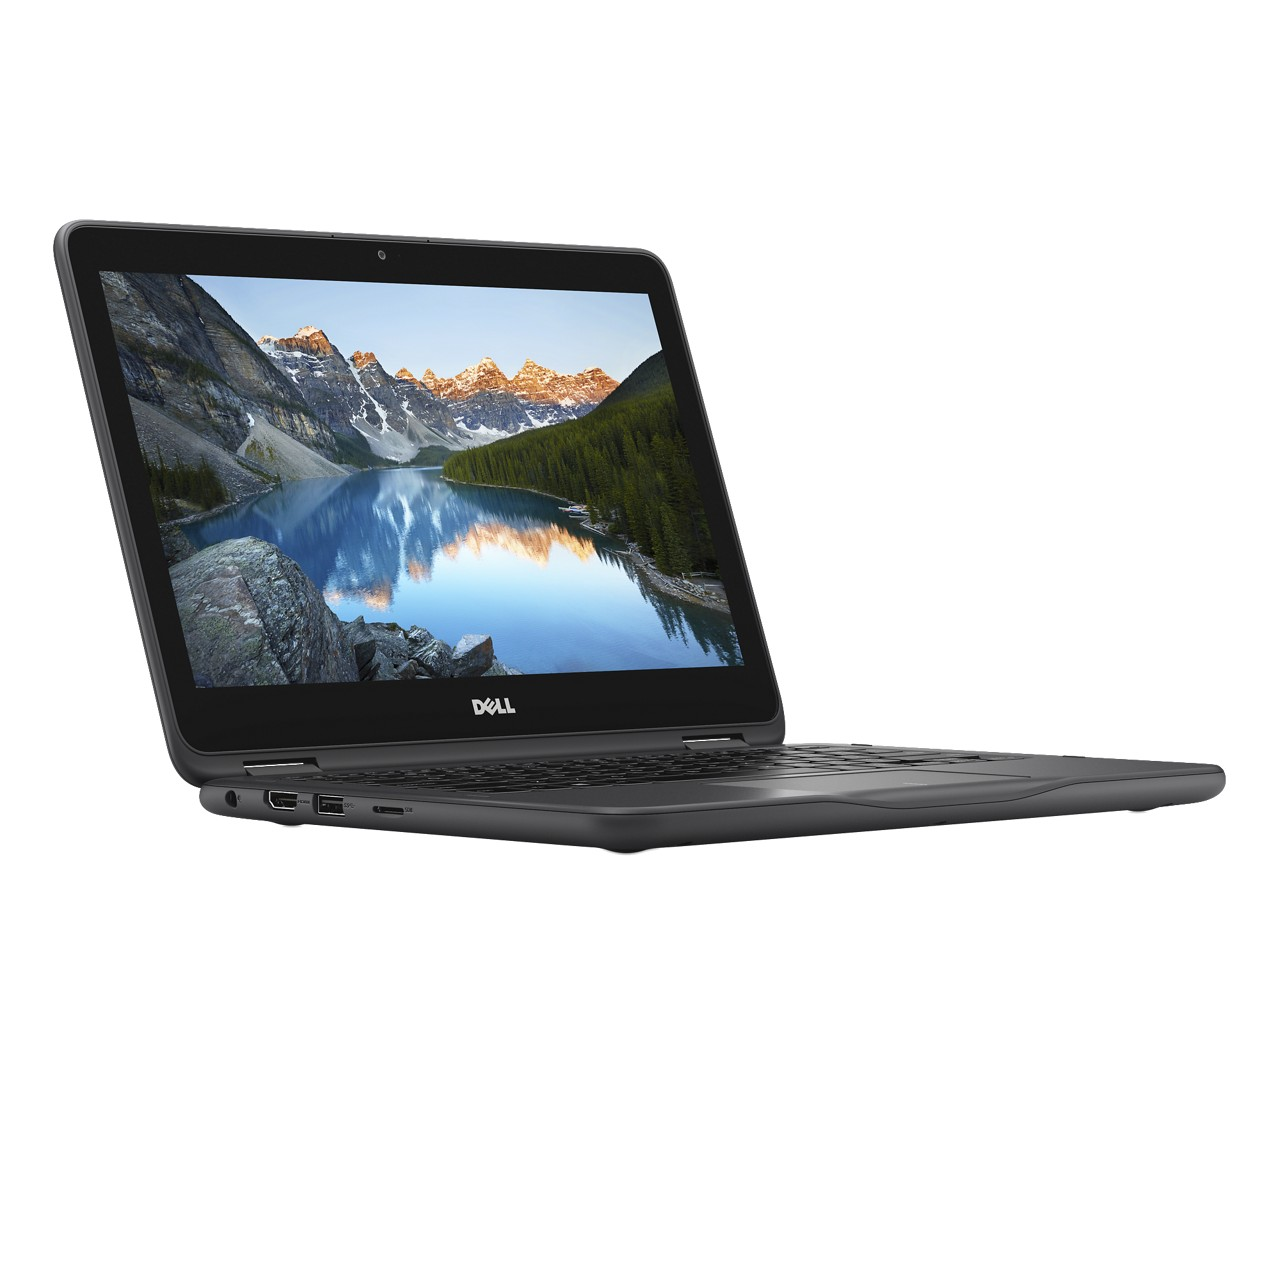 Dell Inspiron 11 3000 2-in-1- 3185- AMD A6-9220e Radeon R4 Graphics- 32GB  eMMC Storage- 4GB RAM